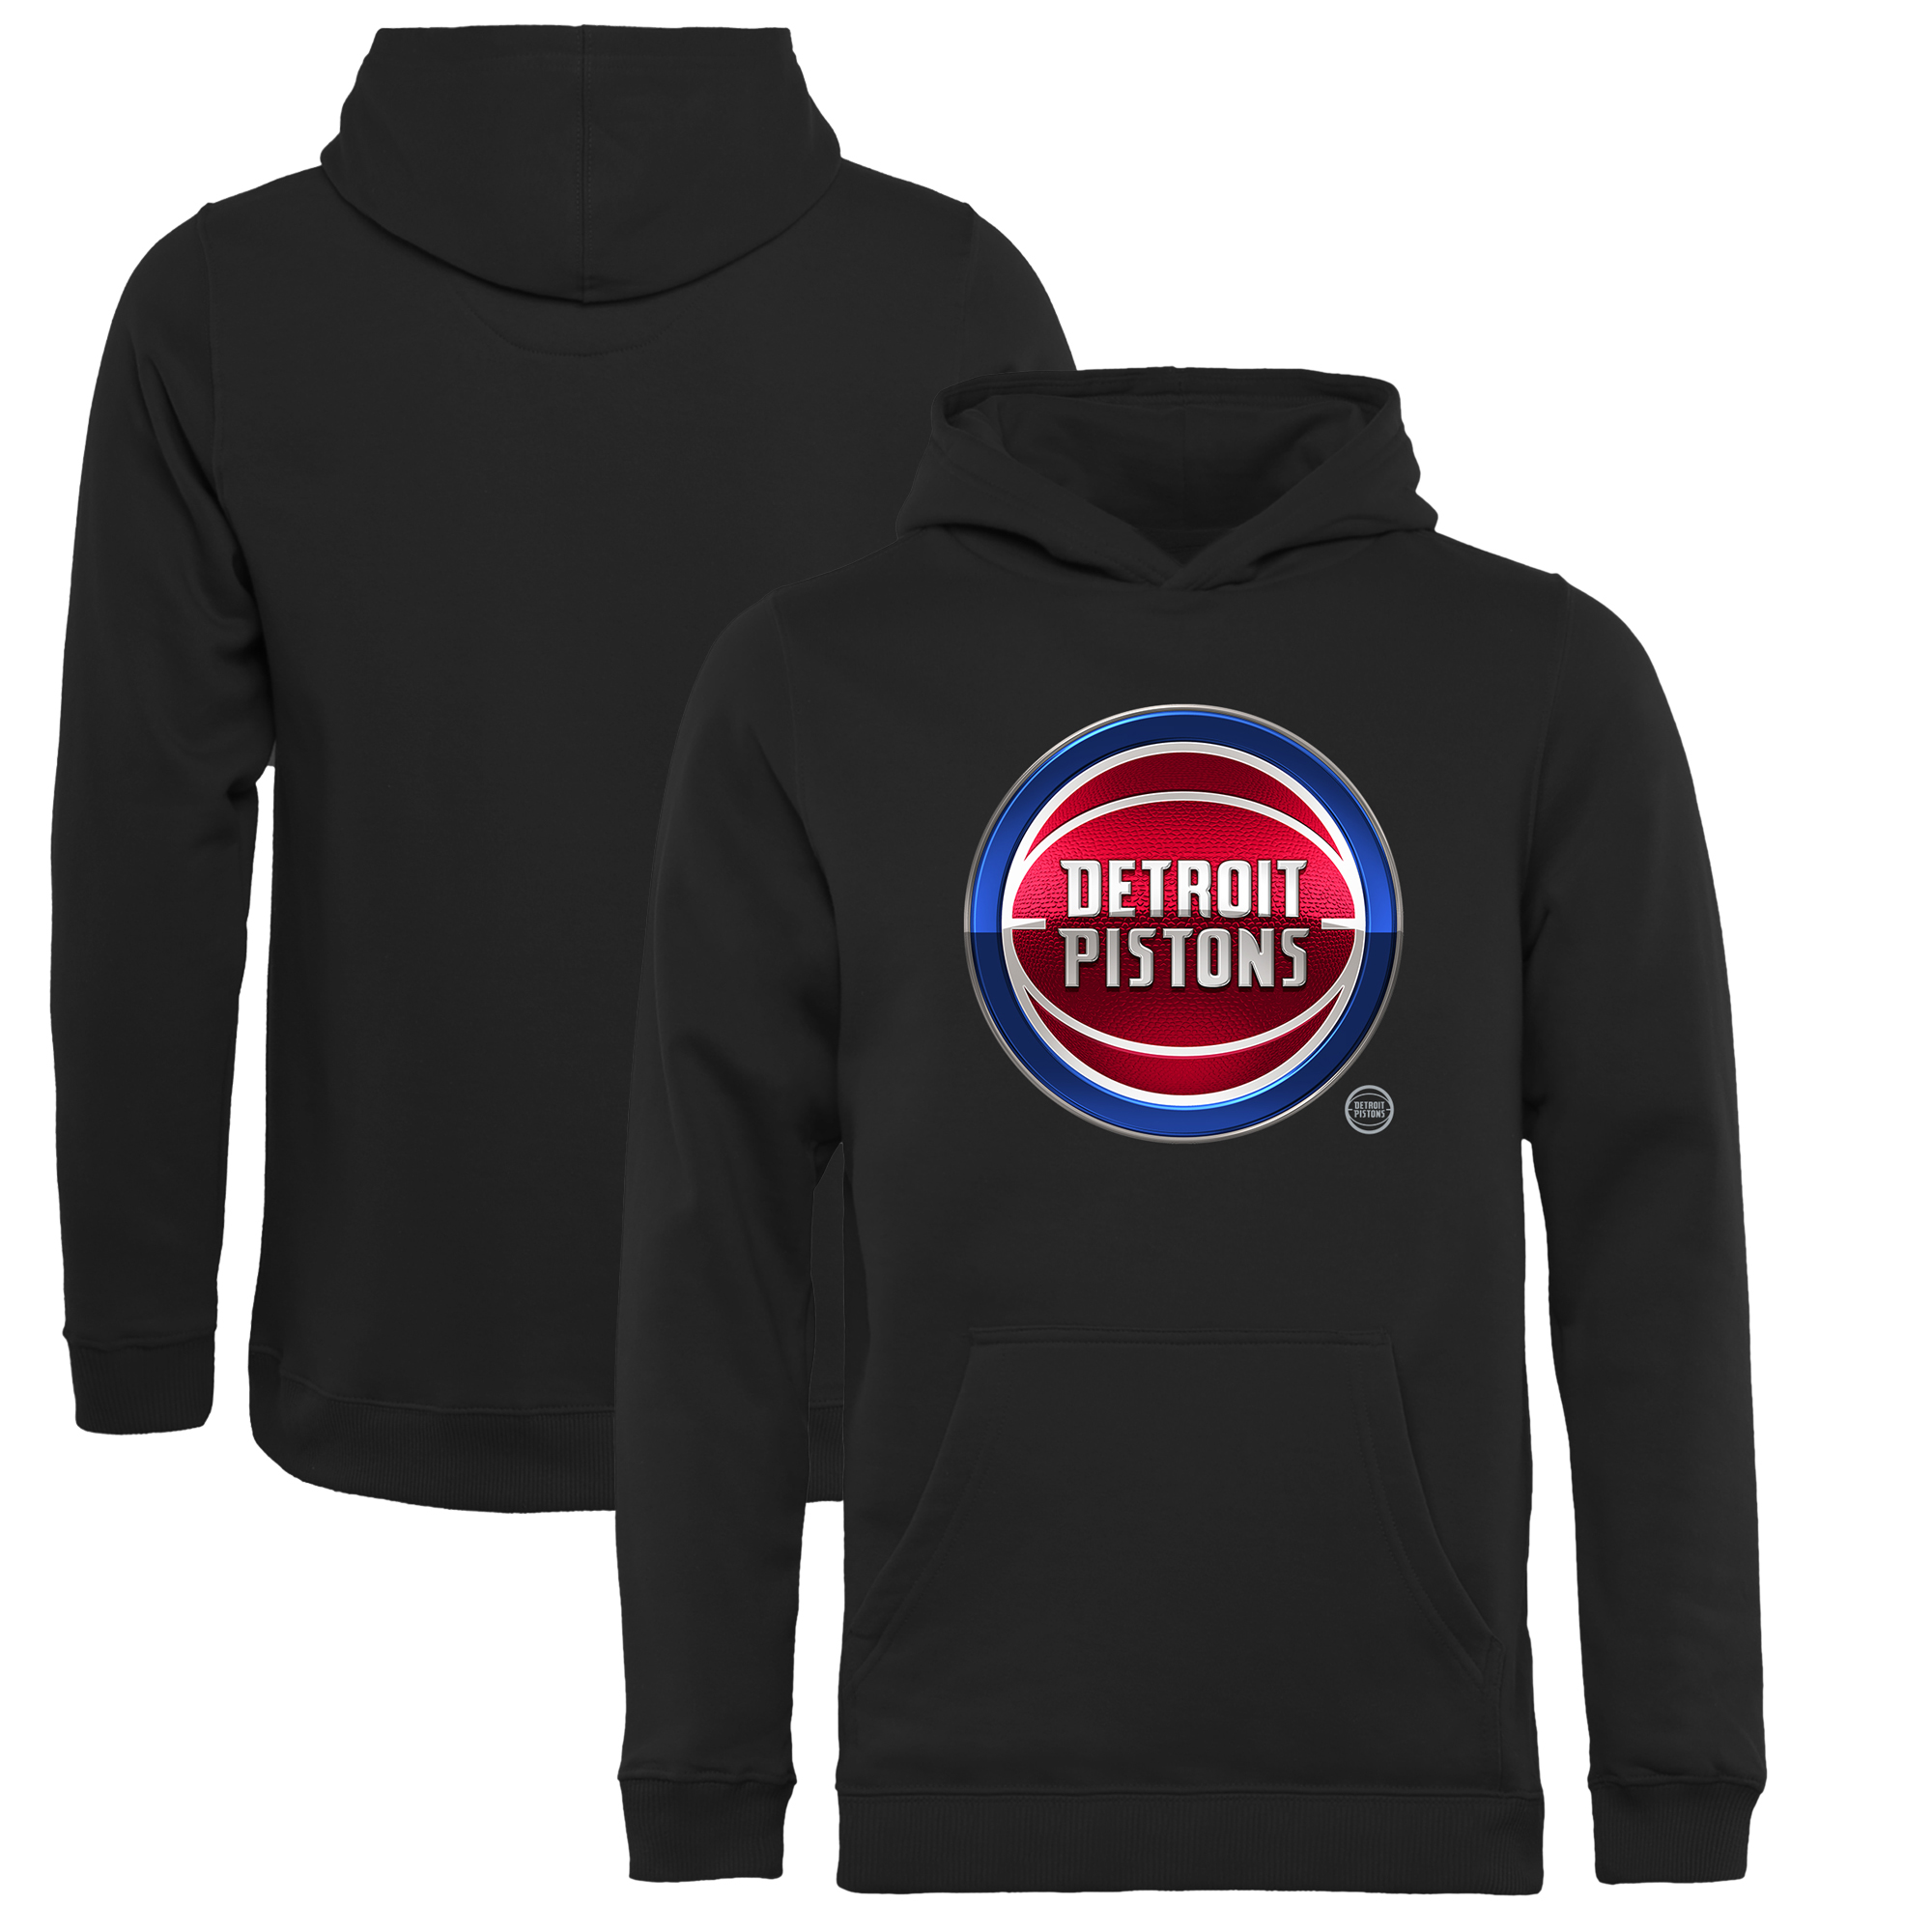 Detroit Pistons Fanatics Branded Youth Midnight Mascot Pullover Hoodie - Black